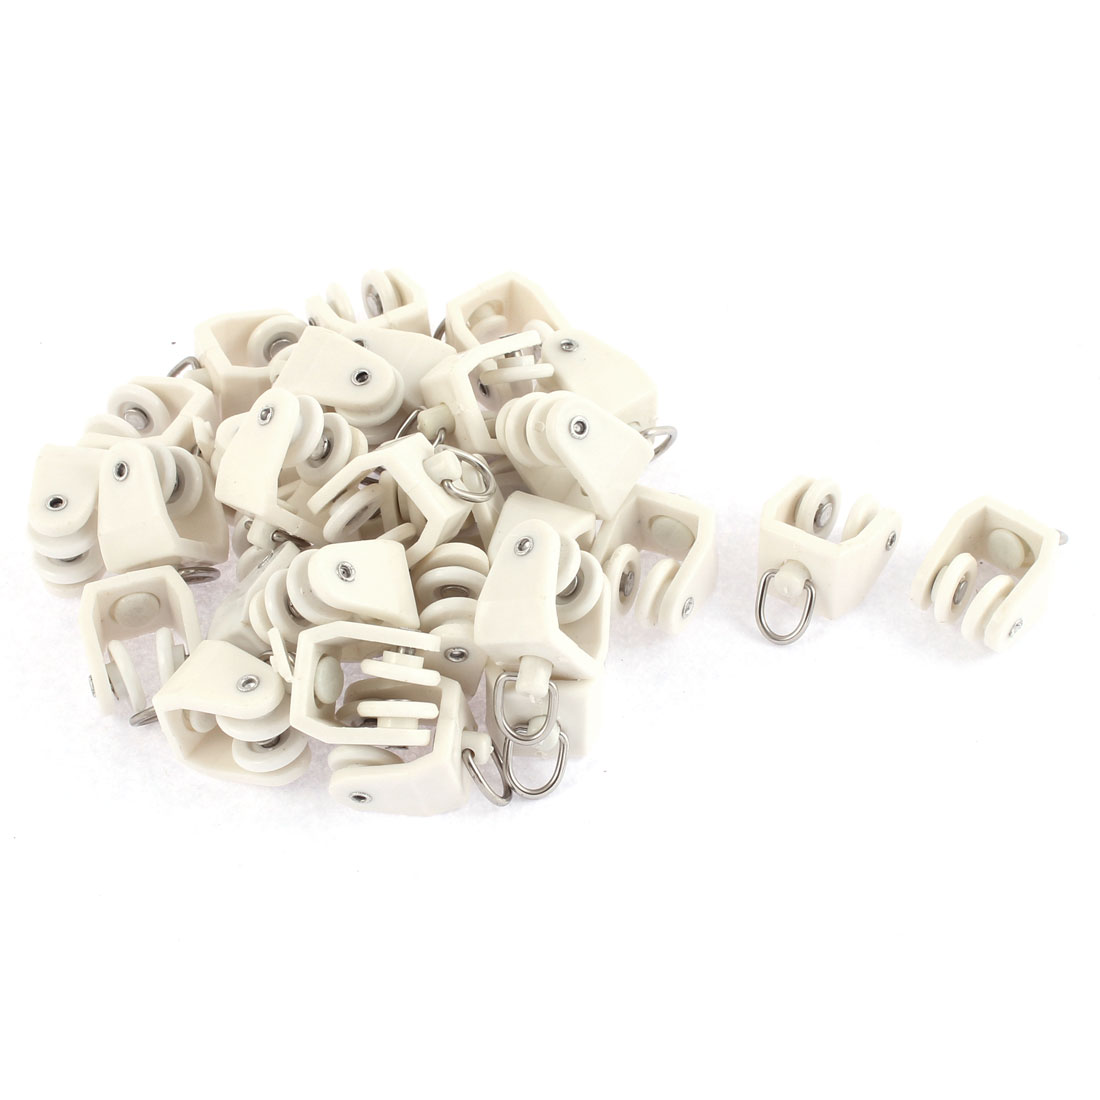 Plastic Swivel Eye Ring Curtain Track Rail Rollers Carrier White 30 Pcs